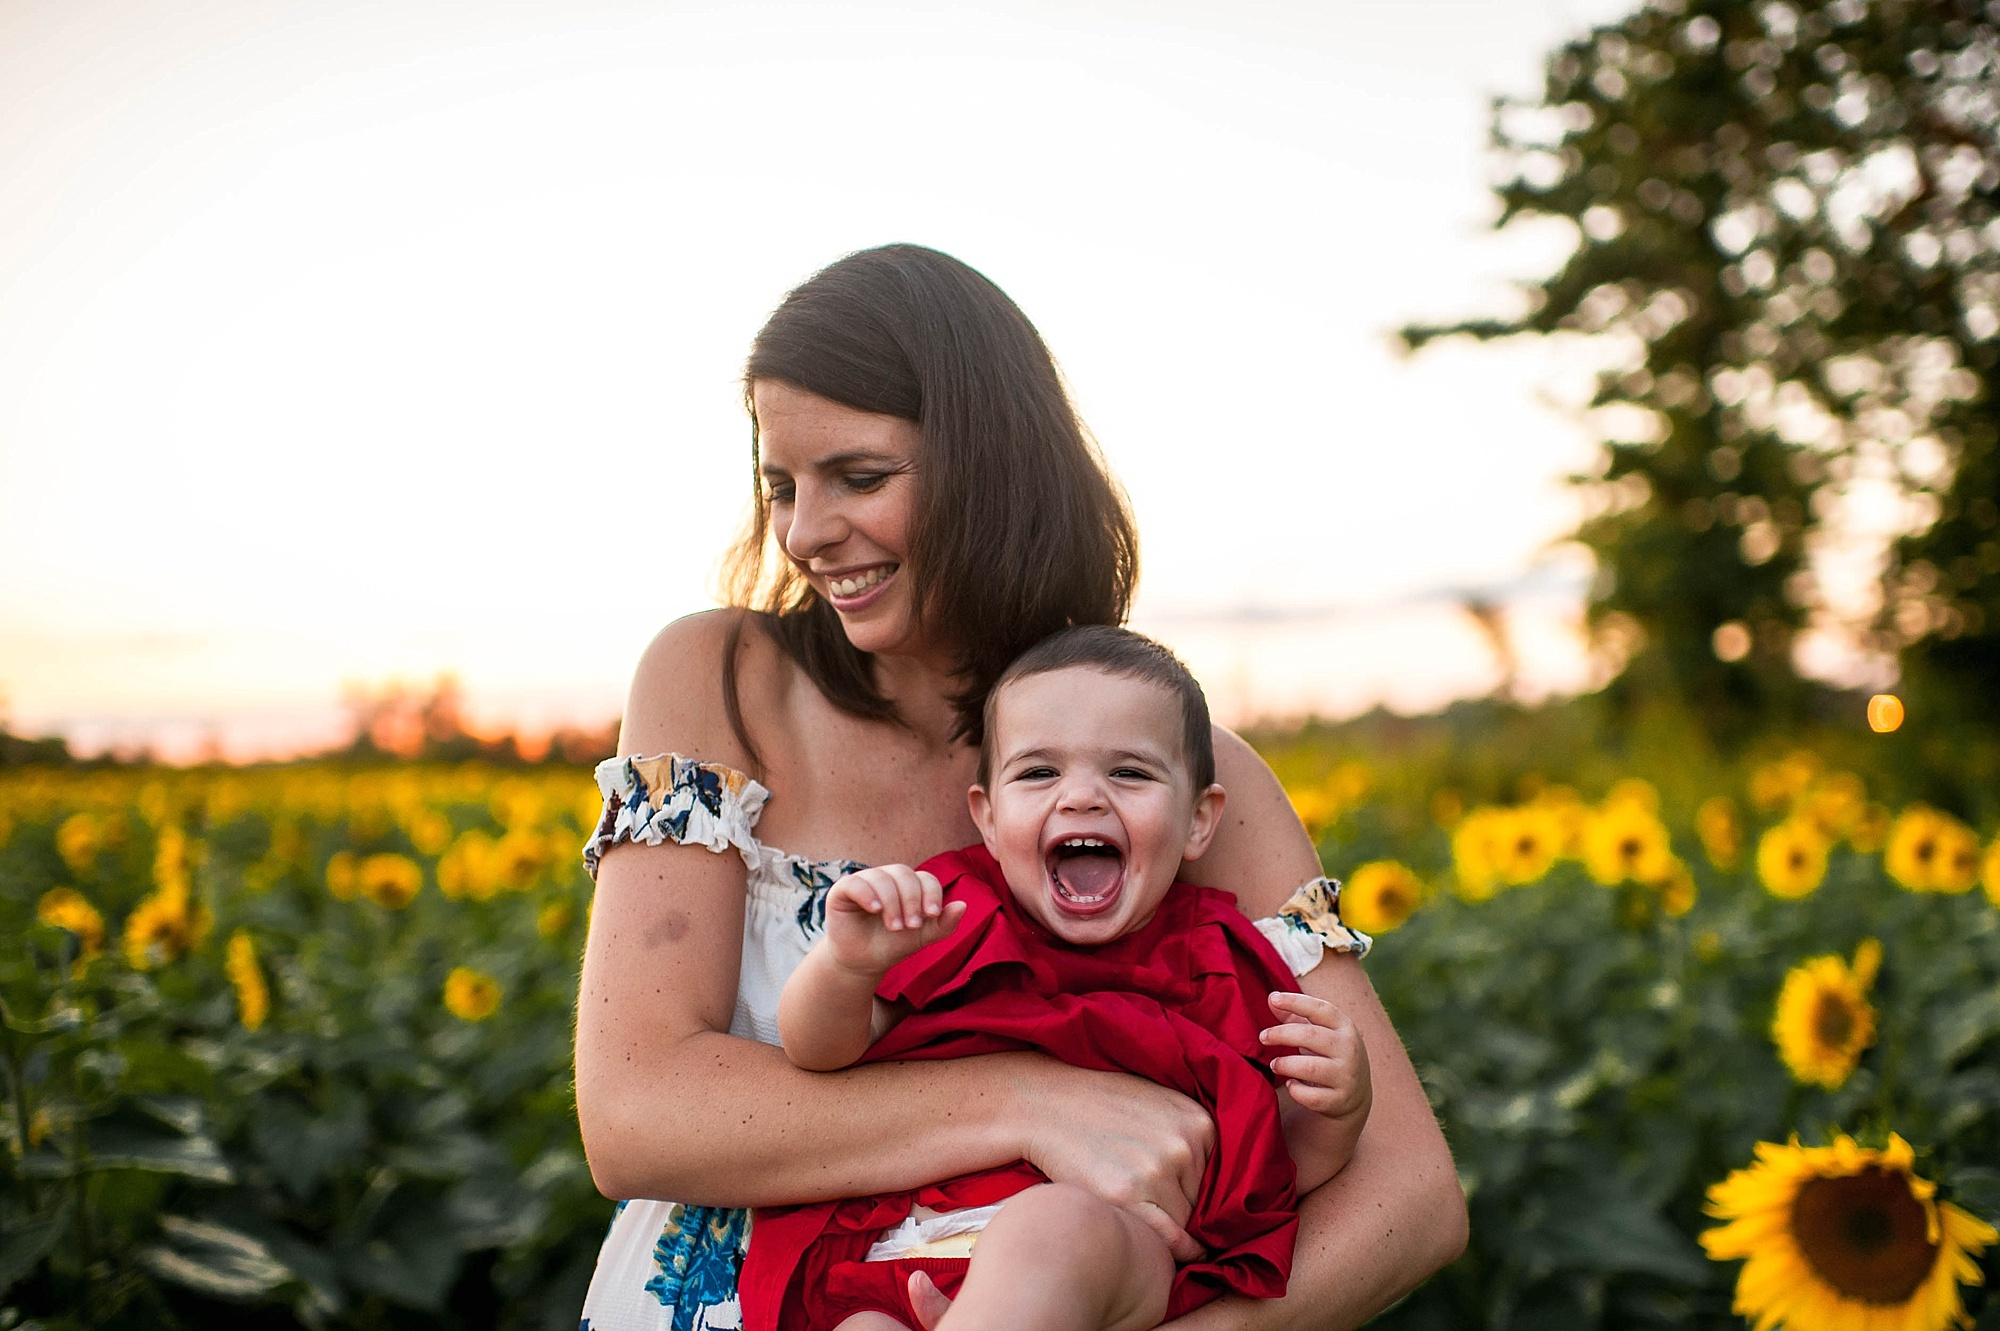 lauren-grayson-photography-cleveland-ohio-photographer-sunflower-fields-sunset-golden-hour-photo-shoot-mommy-and-me-family-child-photographer_0574.jpg